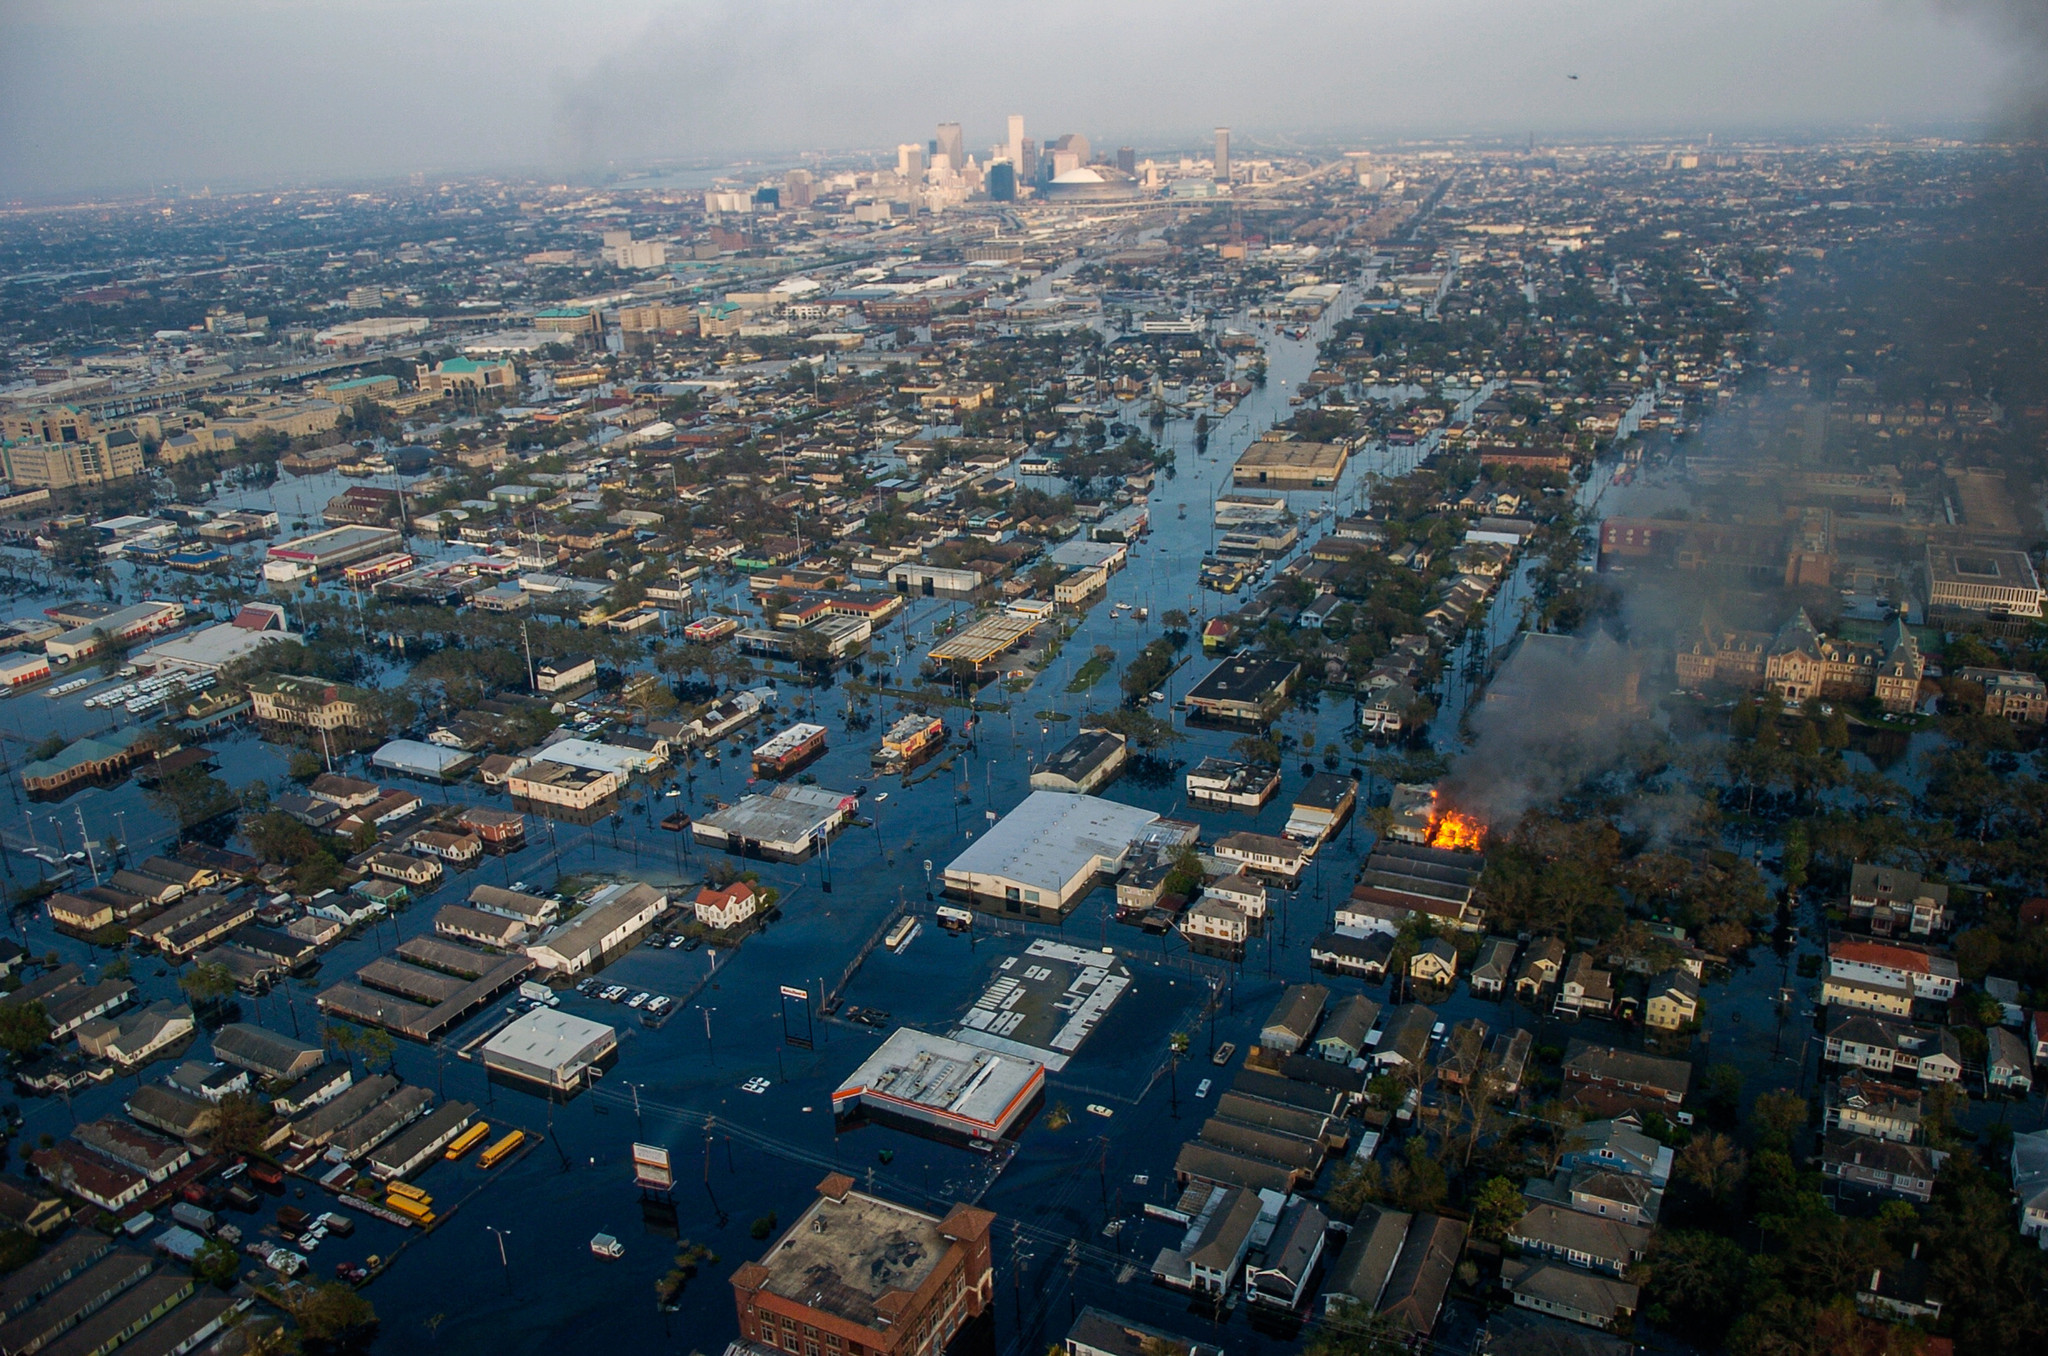 essay on hurricane katrina in new orleans View and download hurricane katrina essays examples and now after hurricane katrina tore apart new orleans and forced americans to admit that there are.